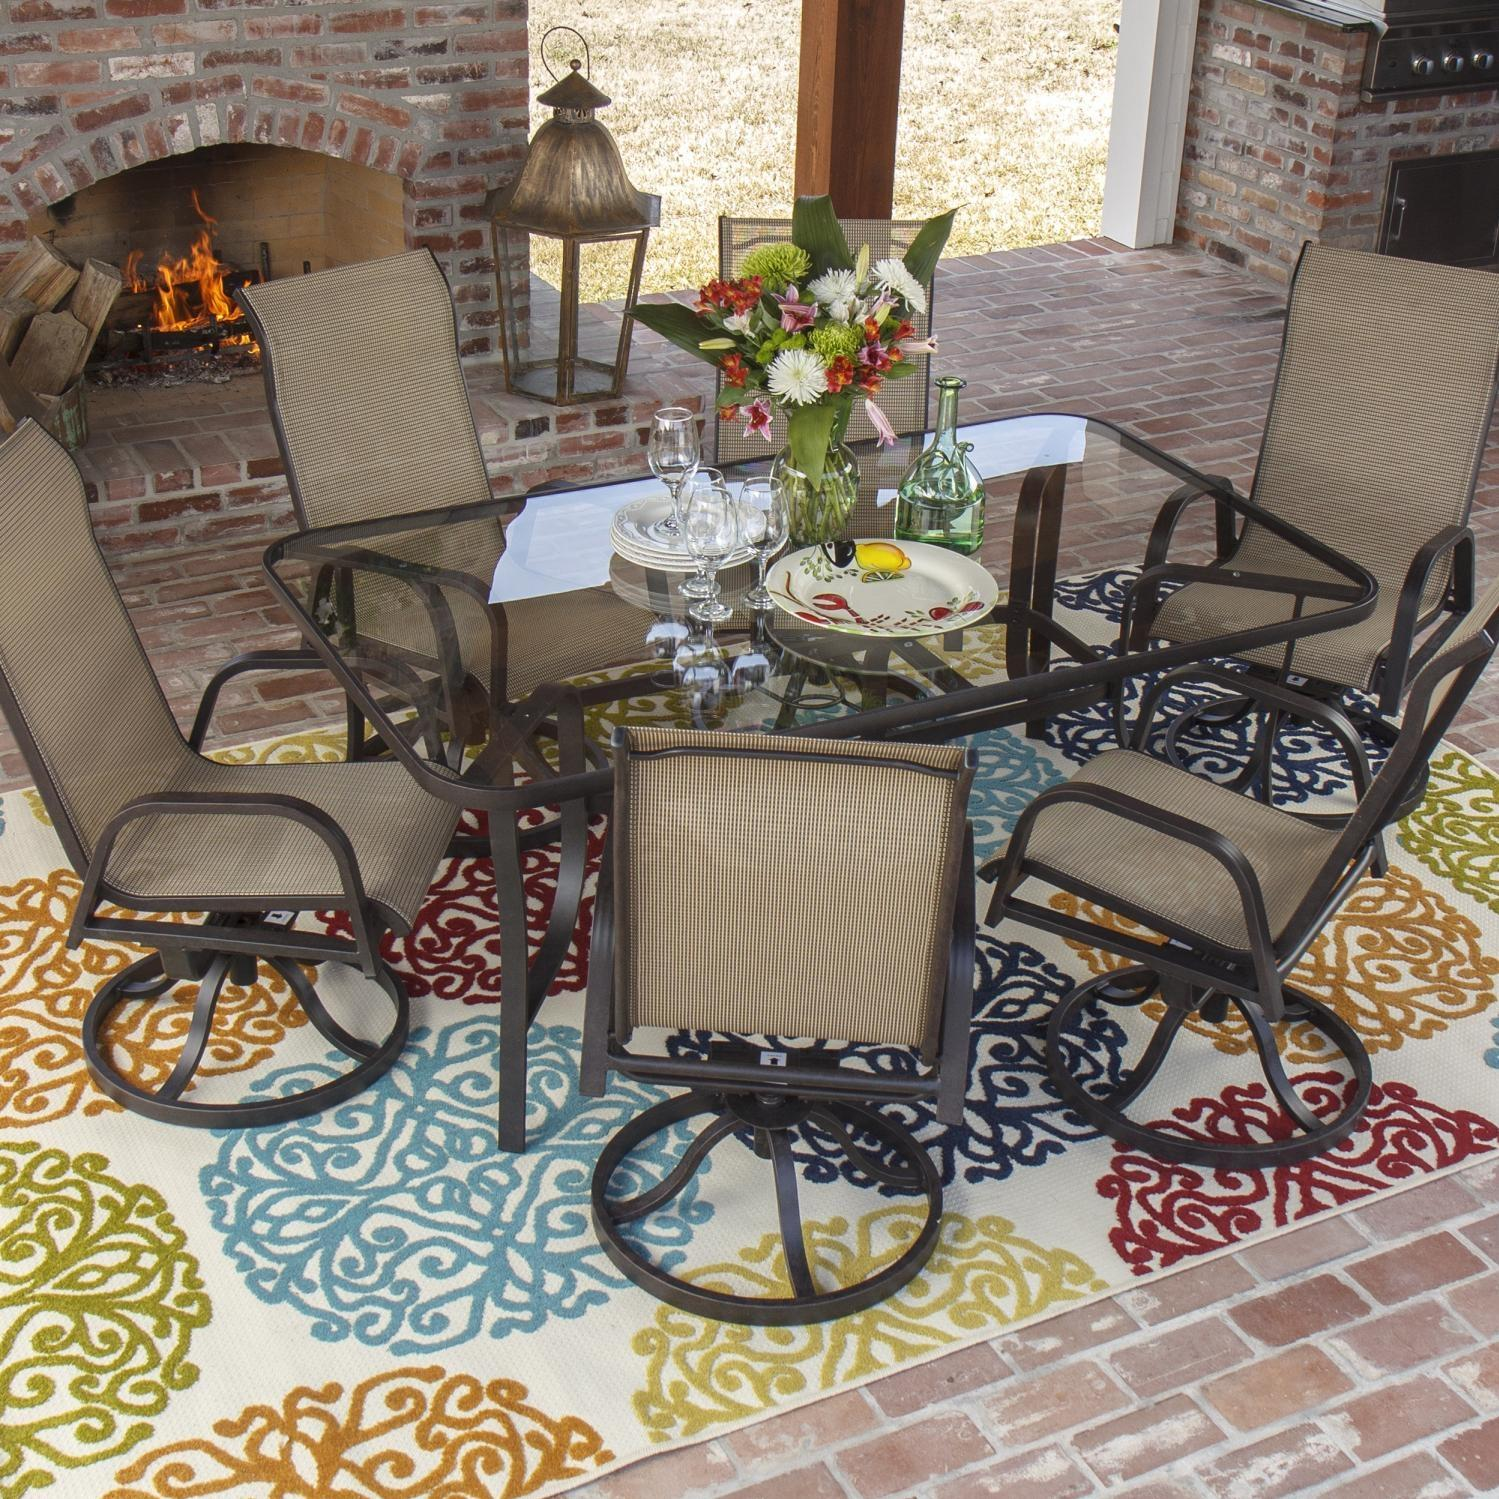 Price outdoor greatroom company napa valley propane fire pit table